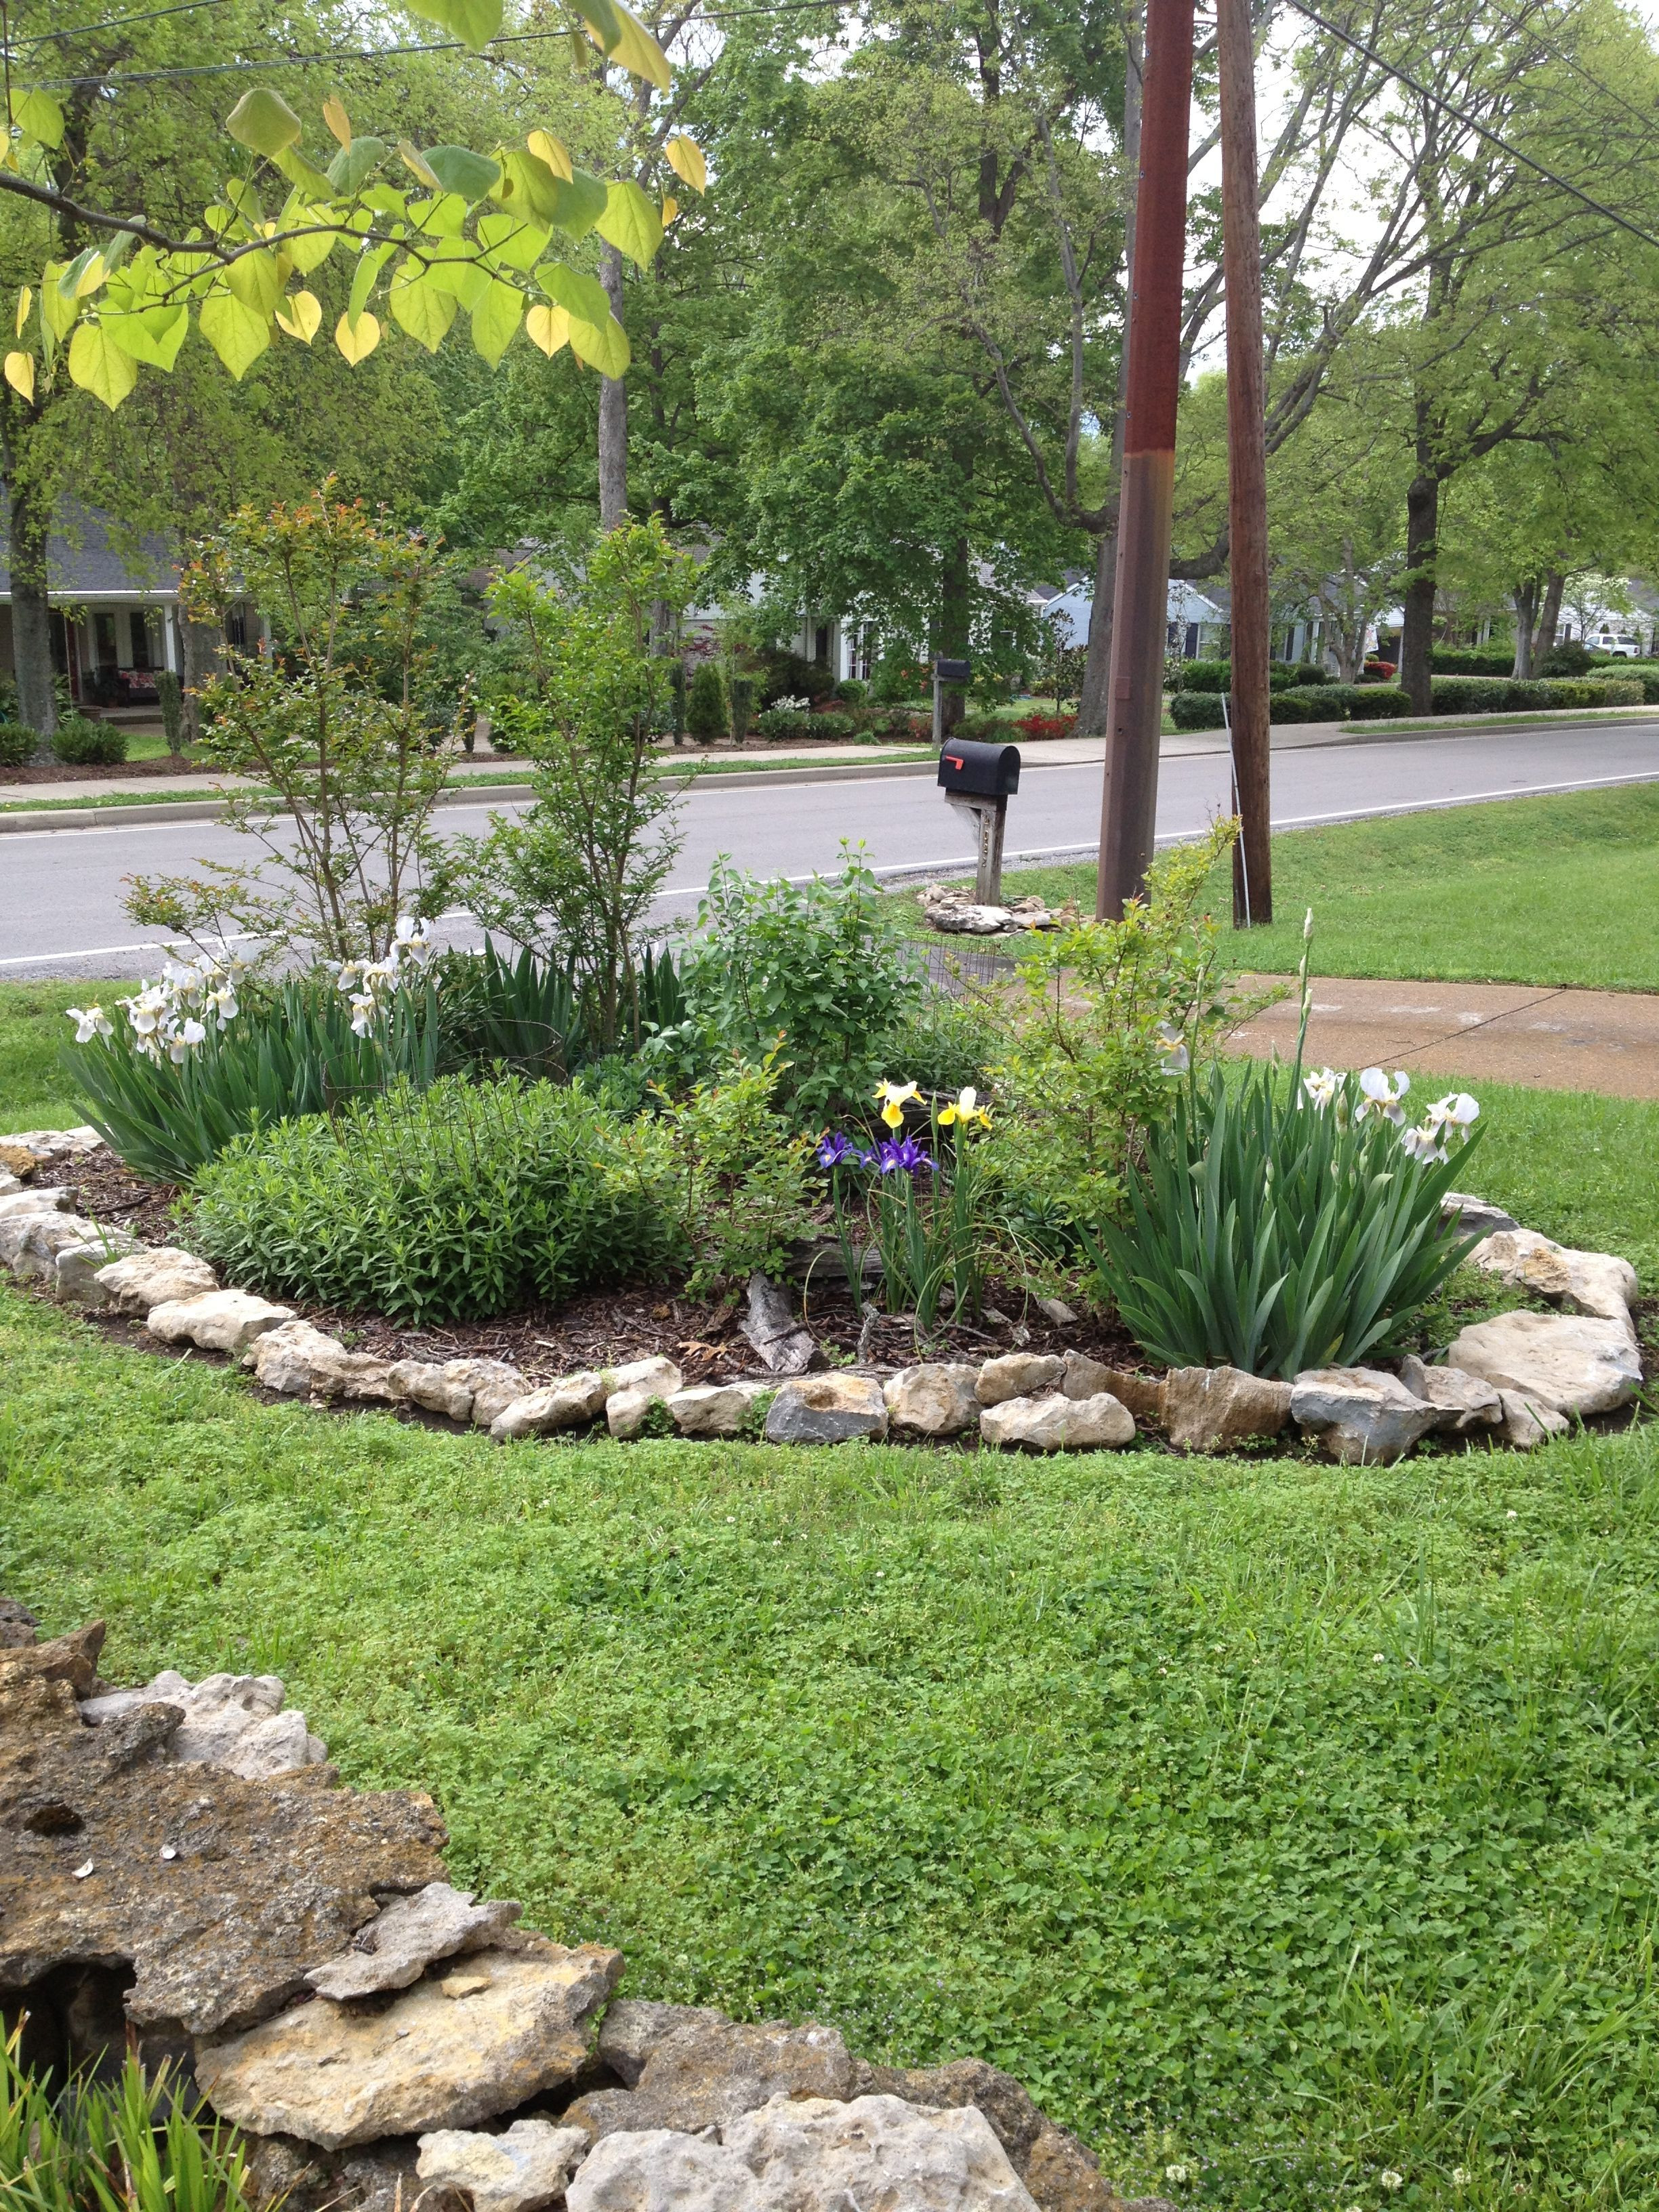 Best ideas about DIY Flower Bed Borders . Save or Pin Island flower garden with rock border diy Now.